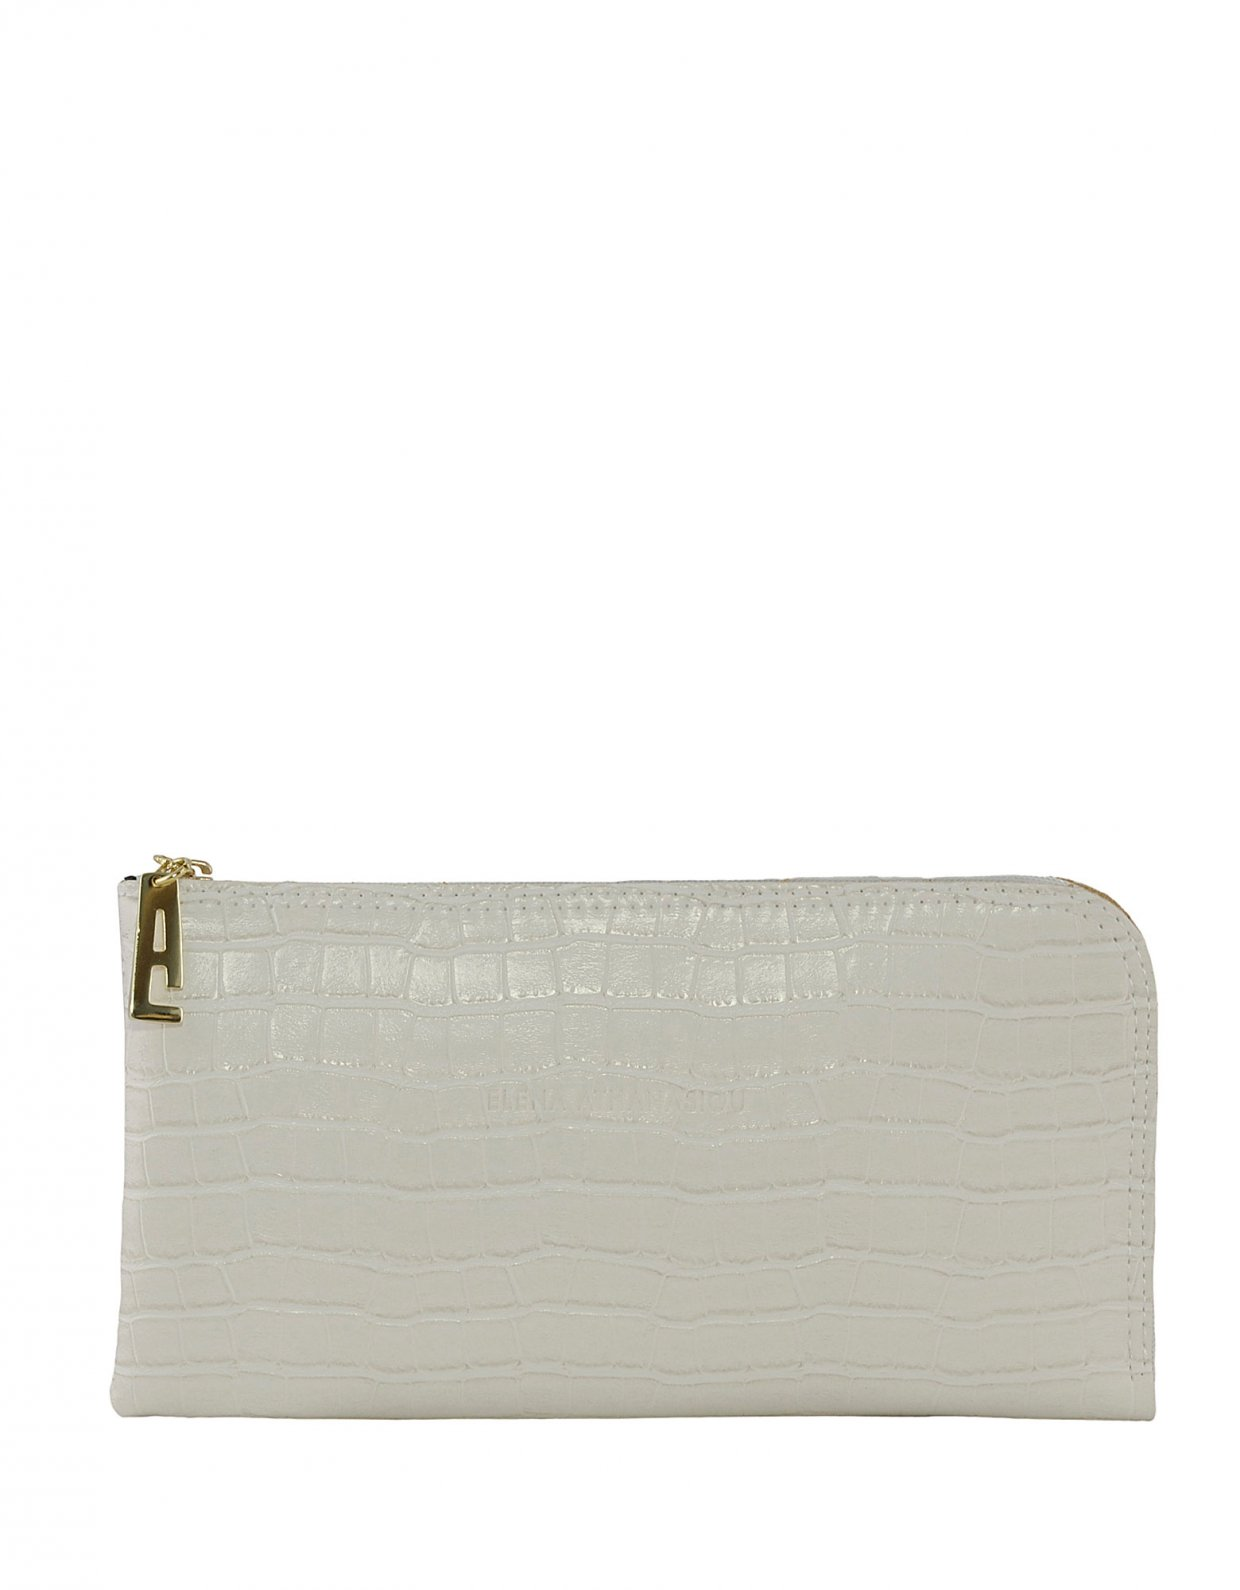 Elena Athanasiou Clutch bag white croco